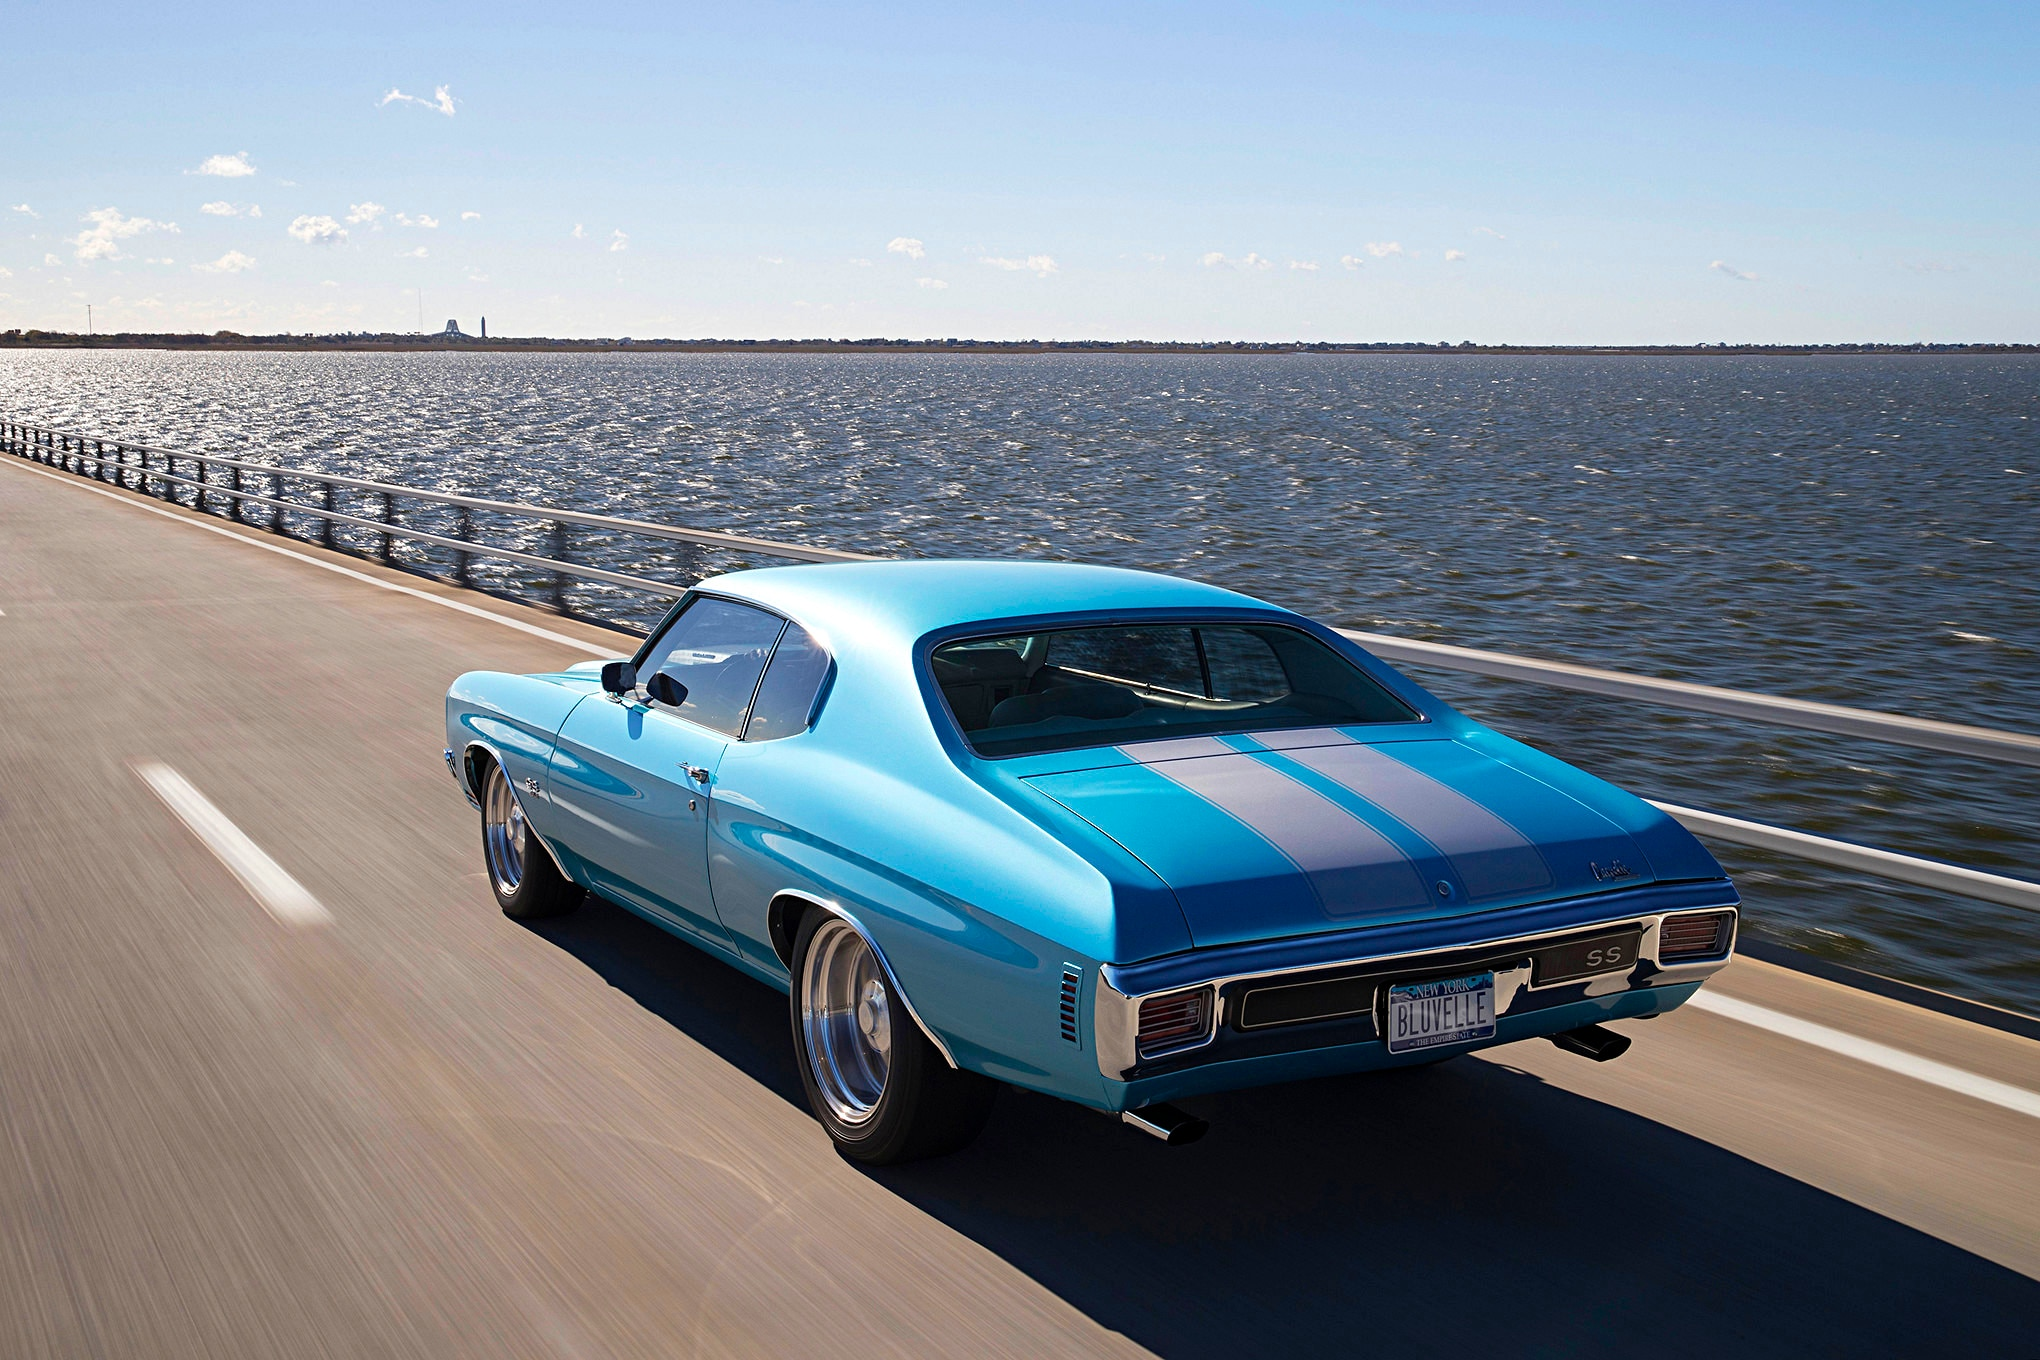 Stunning big-block–powered 1970 Chevelle SS